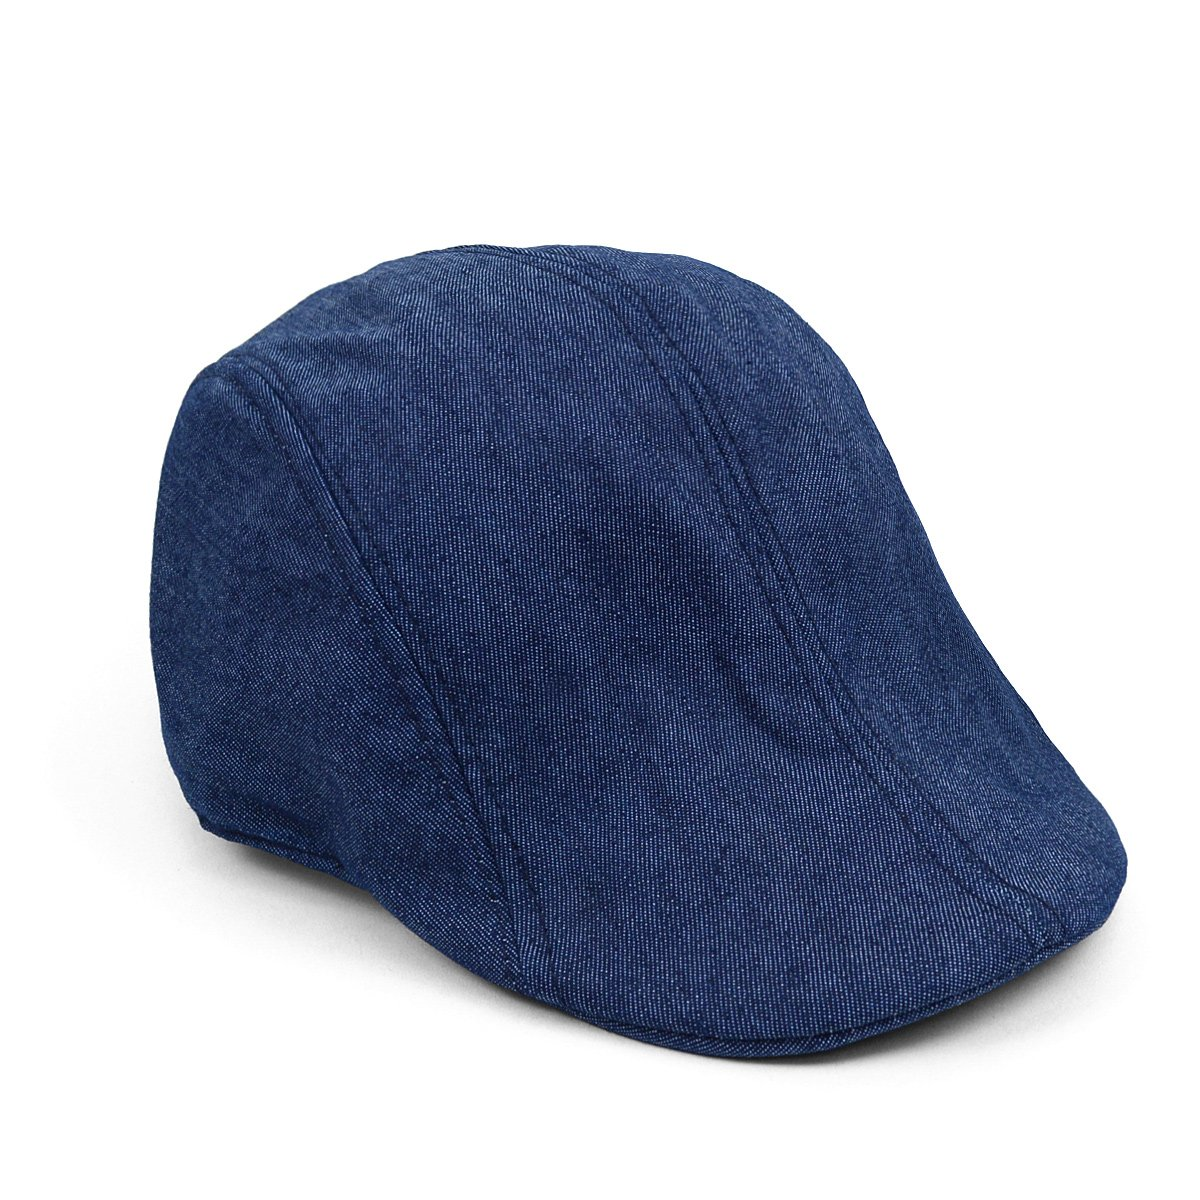 Unisex Classic Solid Color Ivy Hat